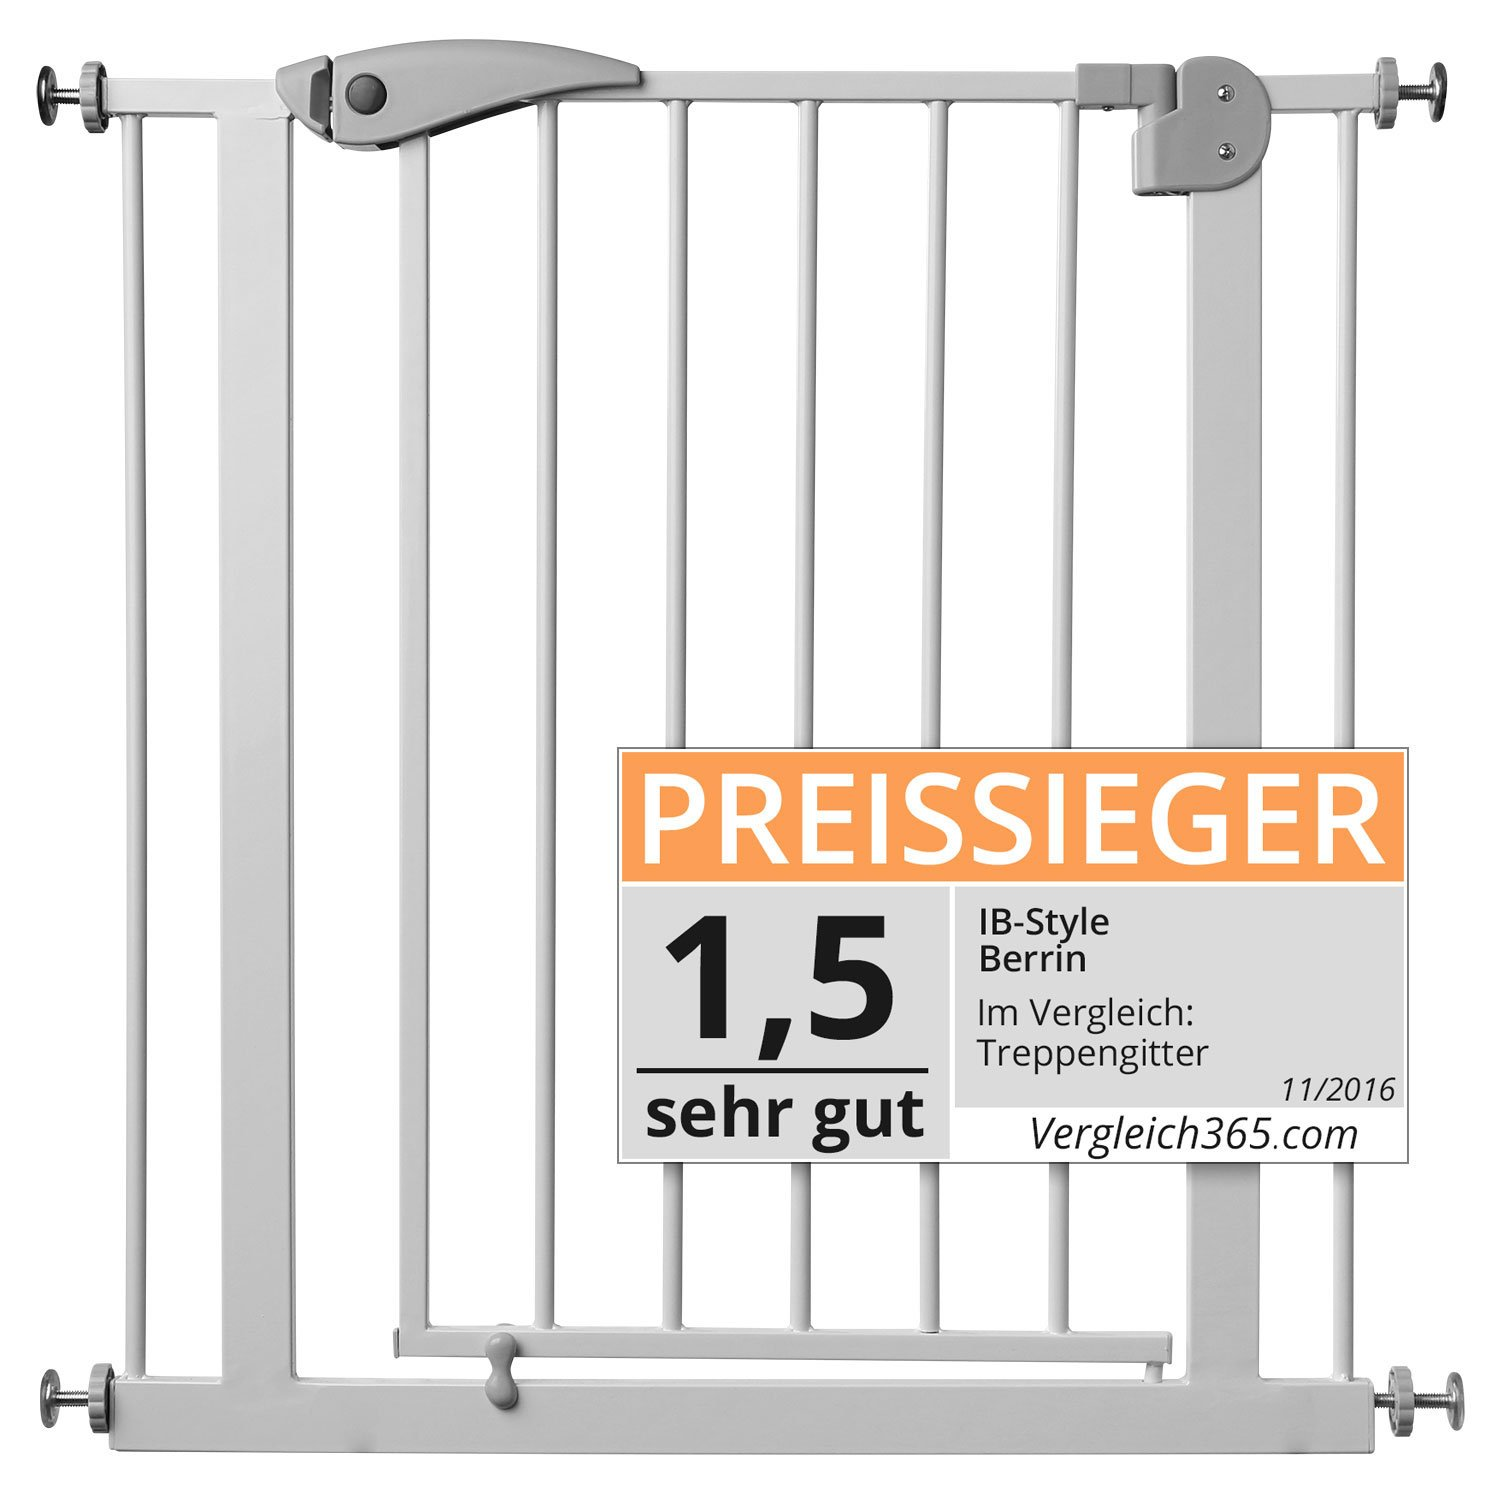 ib style® Berrin Treppengitter 67-175 I Auto-Close I 90°Stop I Einhand-Bedienung IB-Style